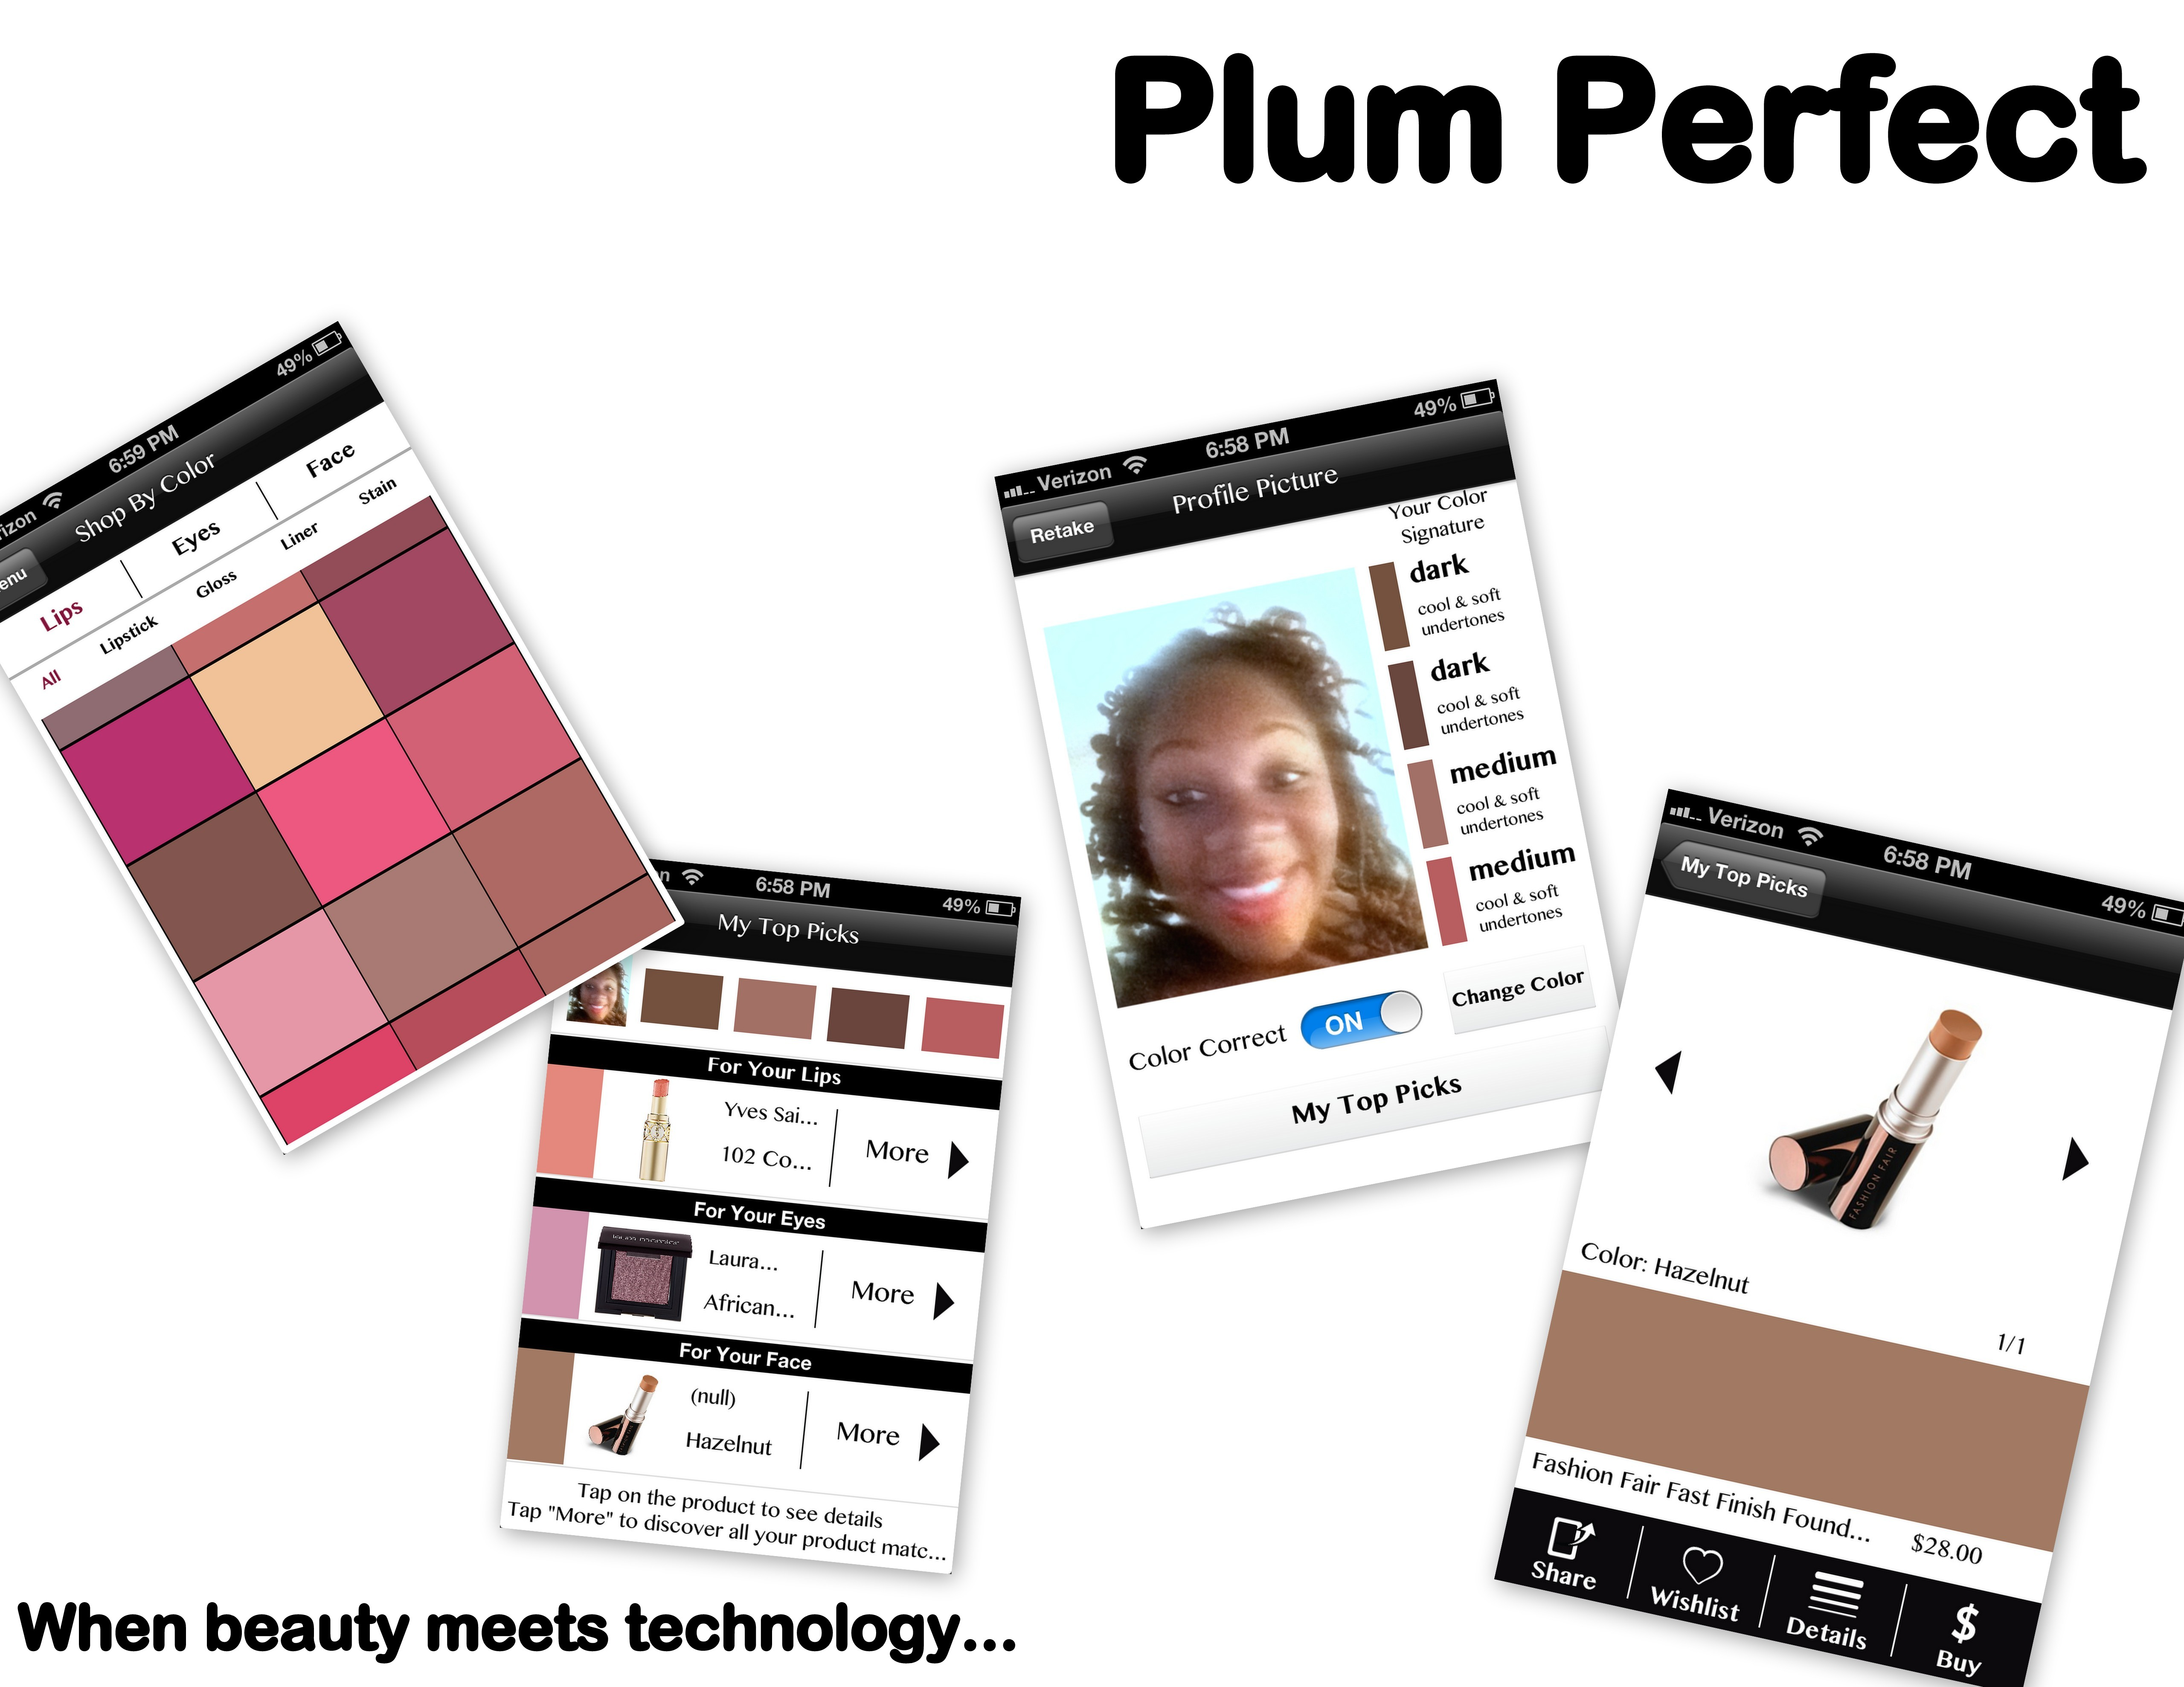 Plum Perfect - An App for Beauty Junkies